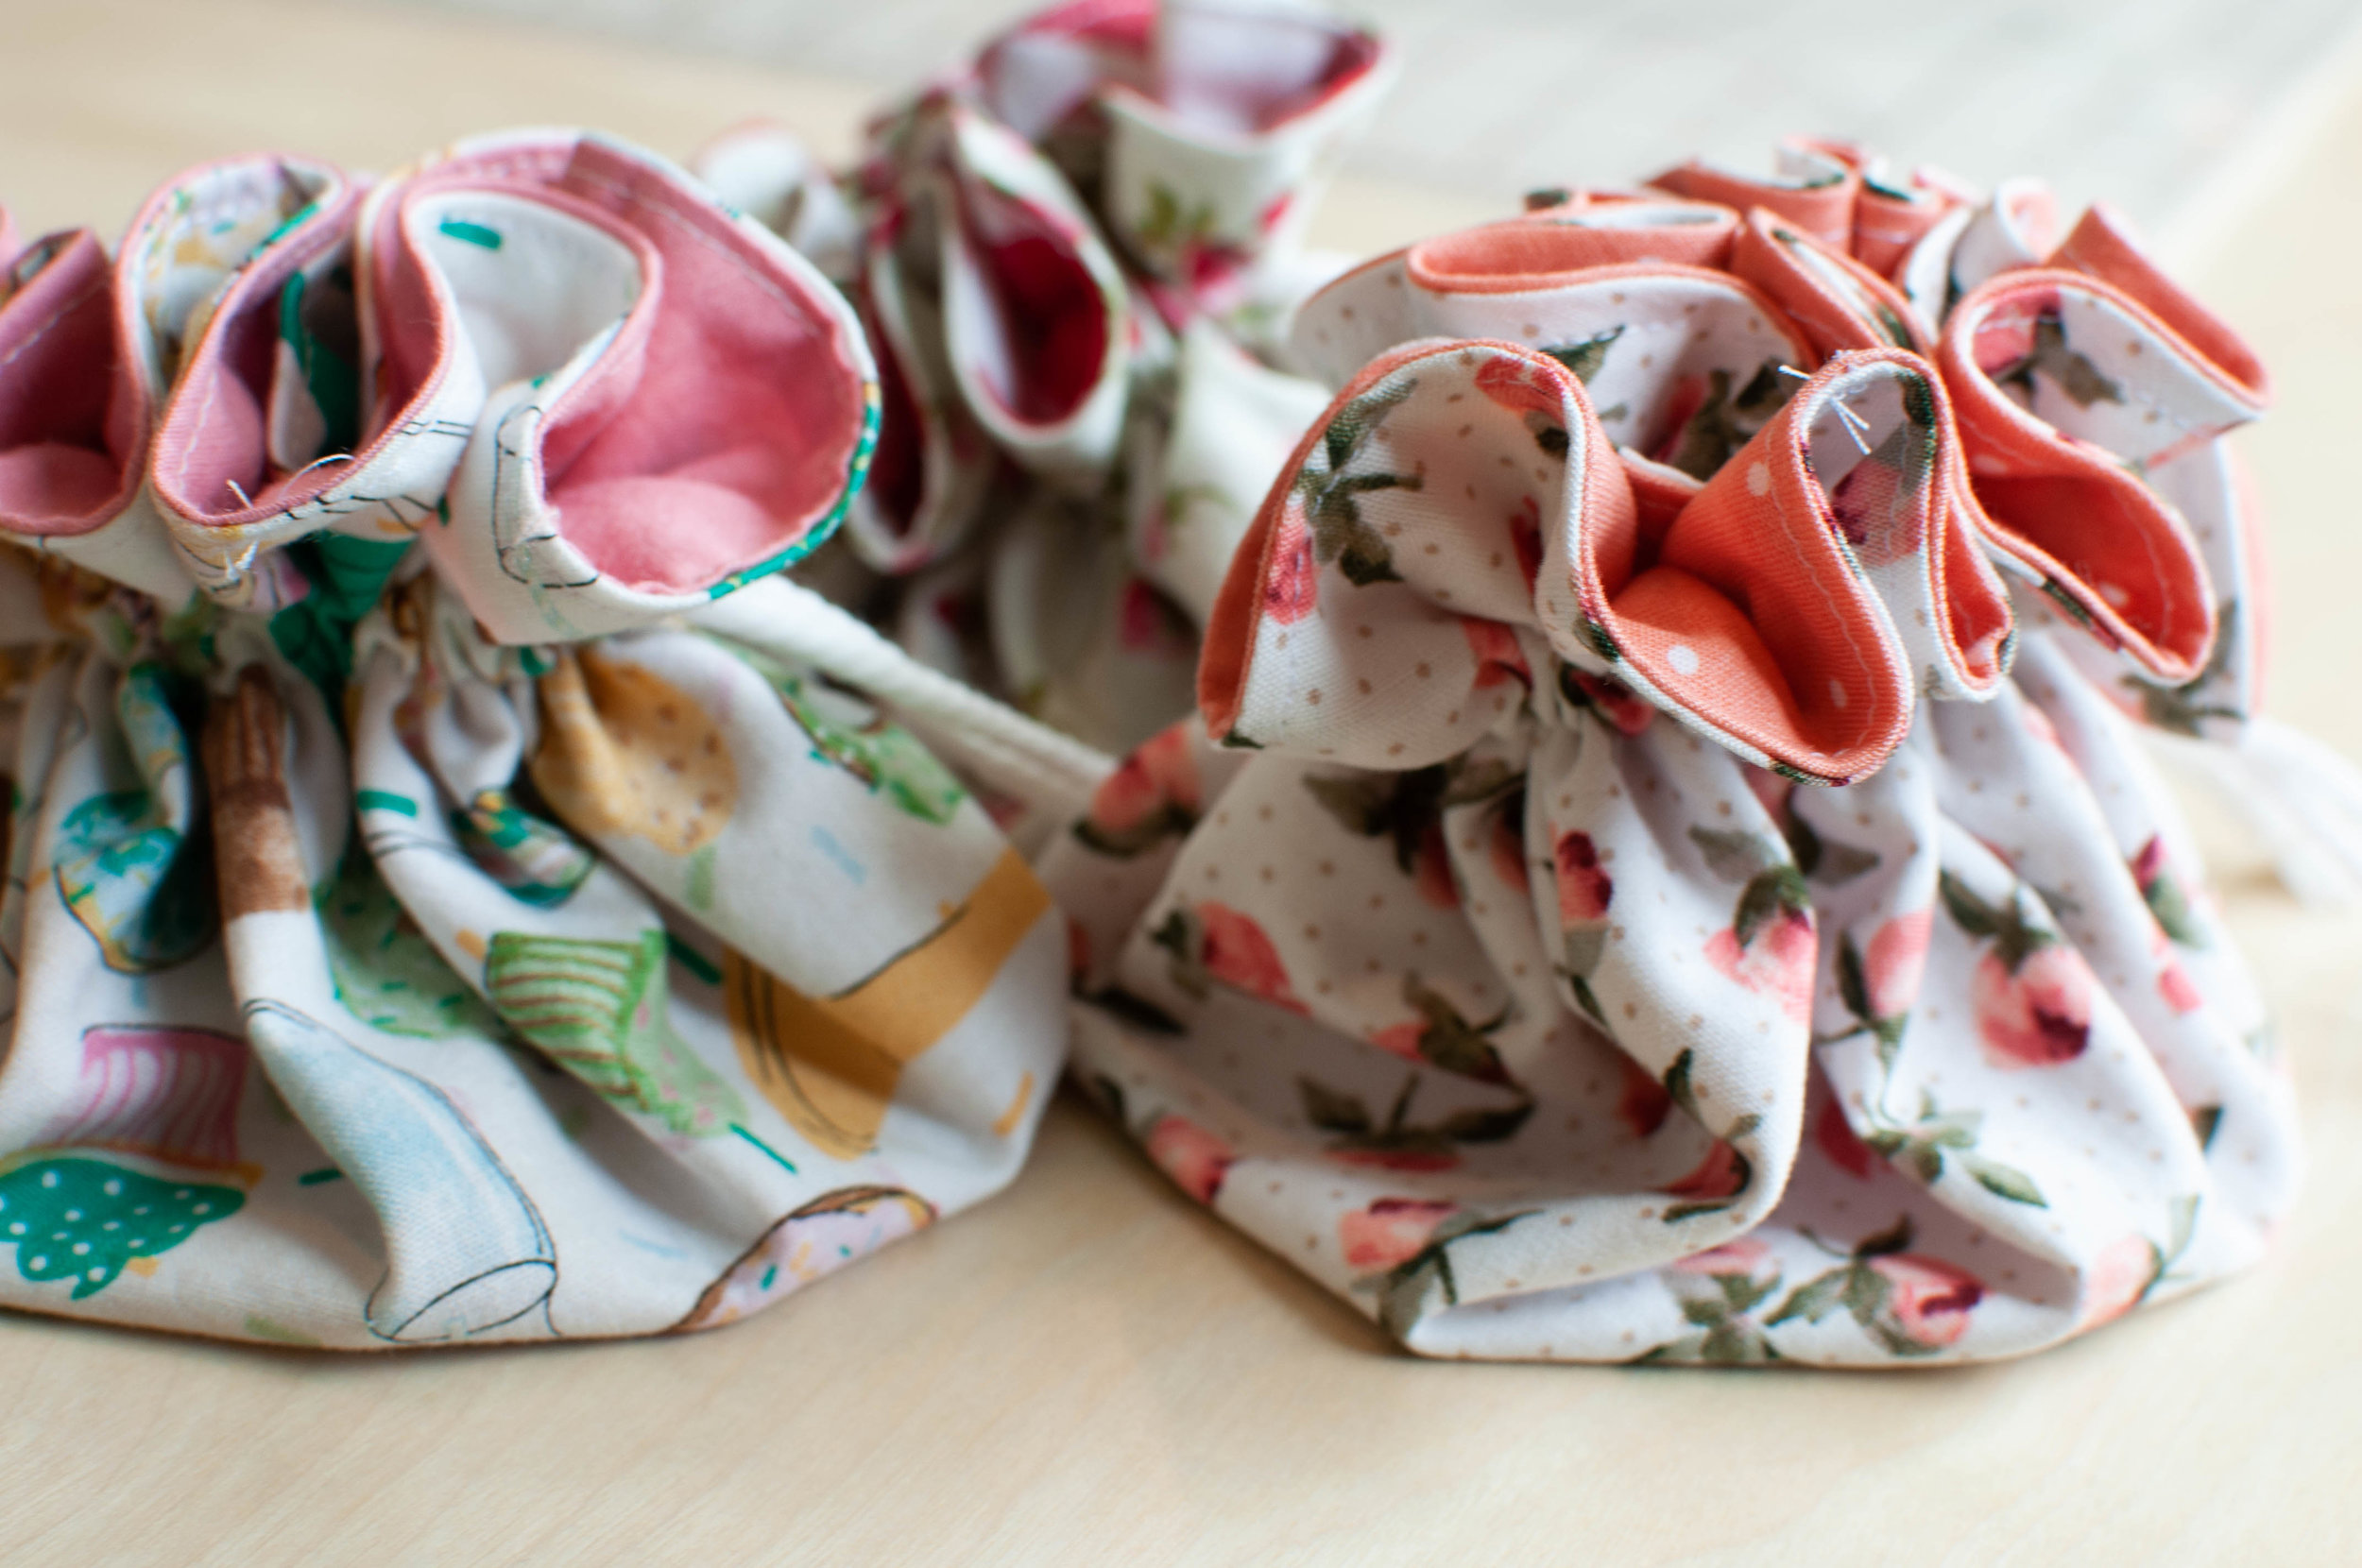 How to sew drawstring pouches, a sewing tutorial by Nikki at Pin, Cut, Sew Studio